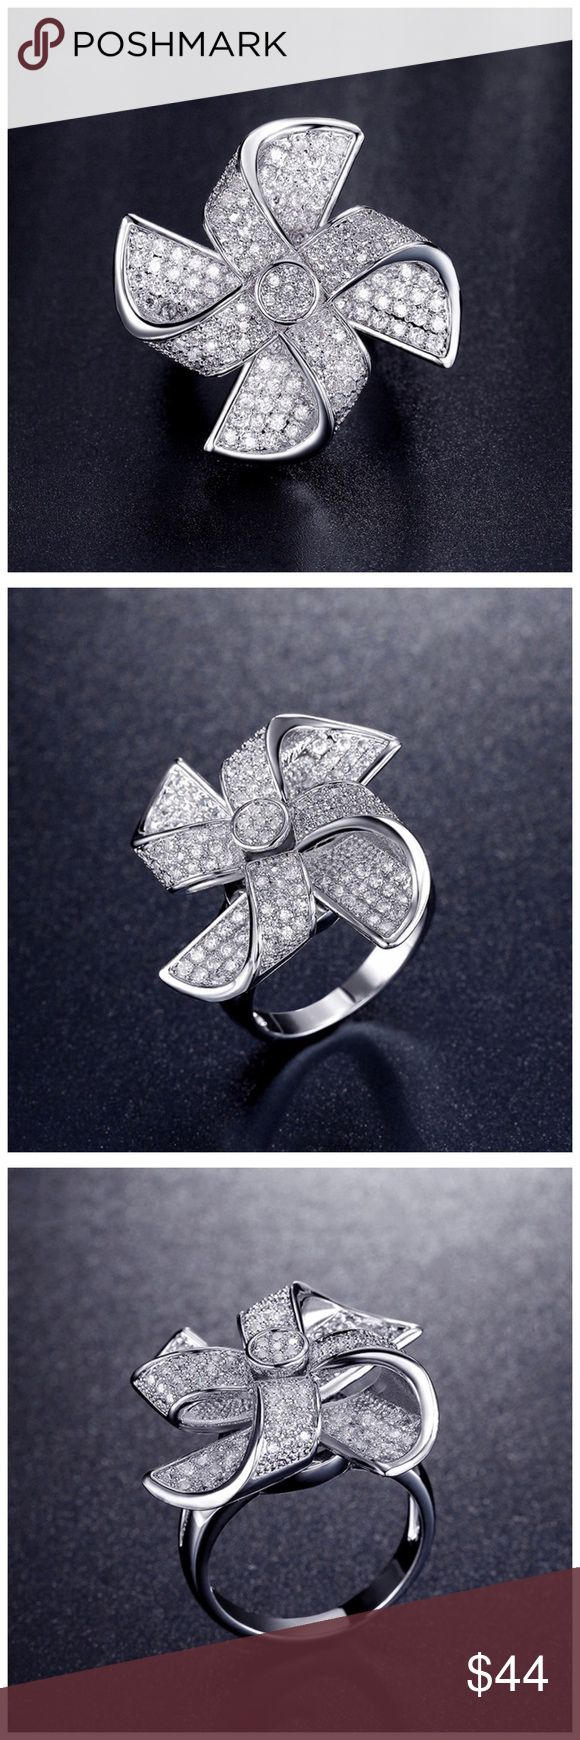 """🆕 Swarovski Crystals Pinwheel Flower Ring ‼️ PRICE FIRM ‼️ 10% DISCOUNT ON 2 OR MORE ITEMS FROM MY CLOSET ‼️   Handmade Using Swarovski Crystal Ring   Retail $128  To say that this is a spectacular ring would be an understatement. Beautifully & skillfully handcrafted using the finest Swarovski crystals with a 14K white gold overlay. This is a true statement piece. Pave set crystals. Ring is approximately .1.2"""" in diameter. Comes with a beautiful gift box. Jewelry Rings"""